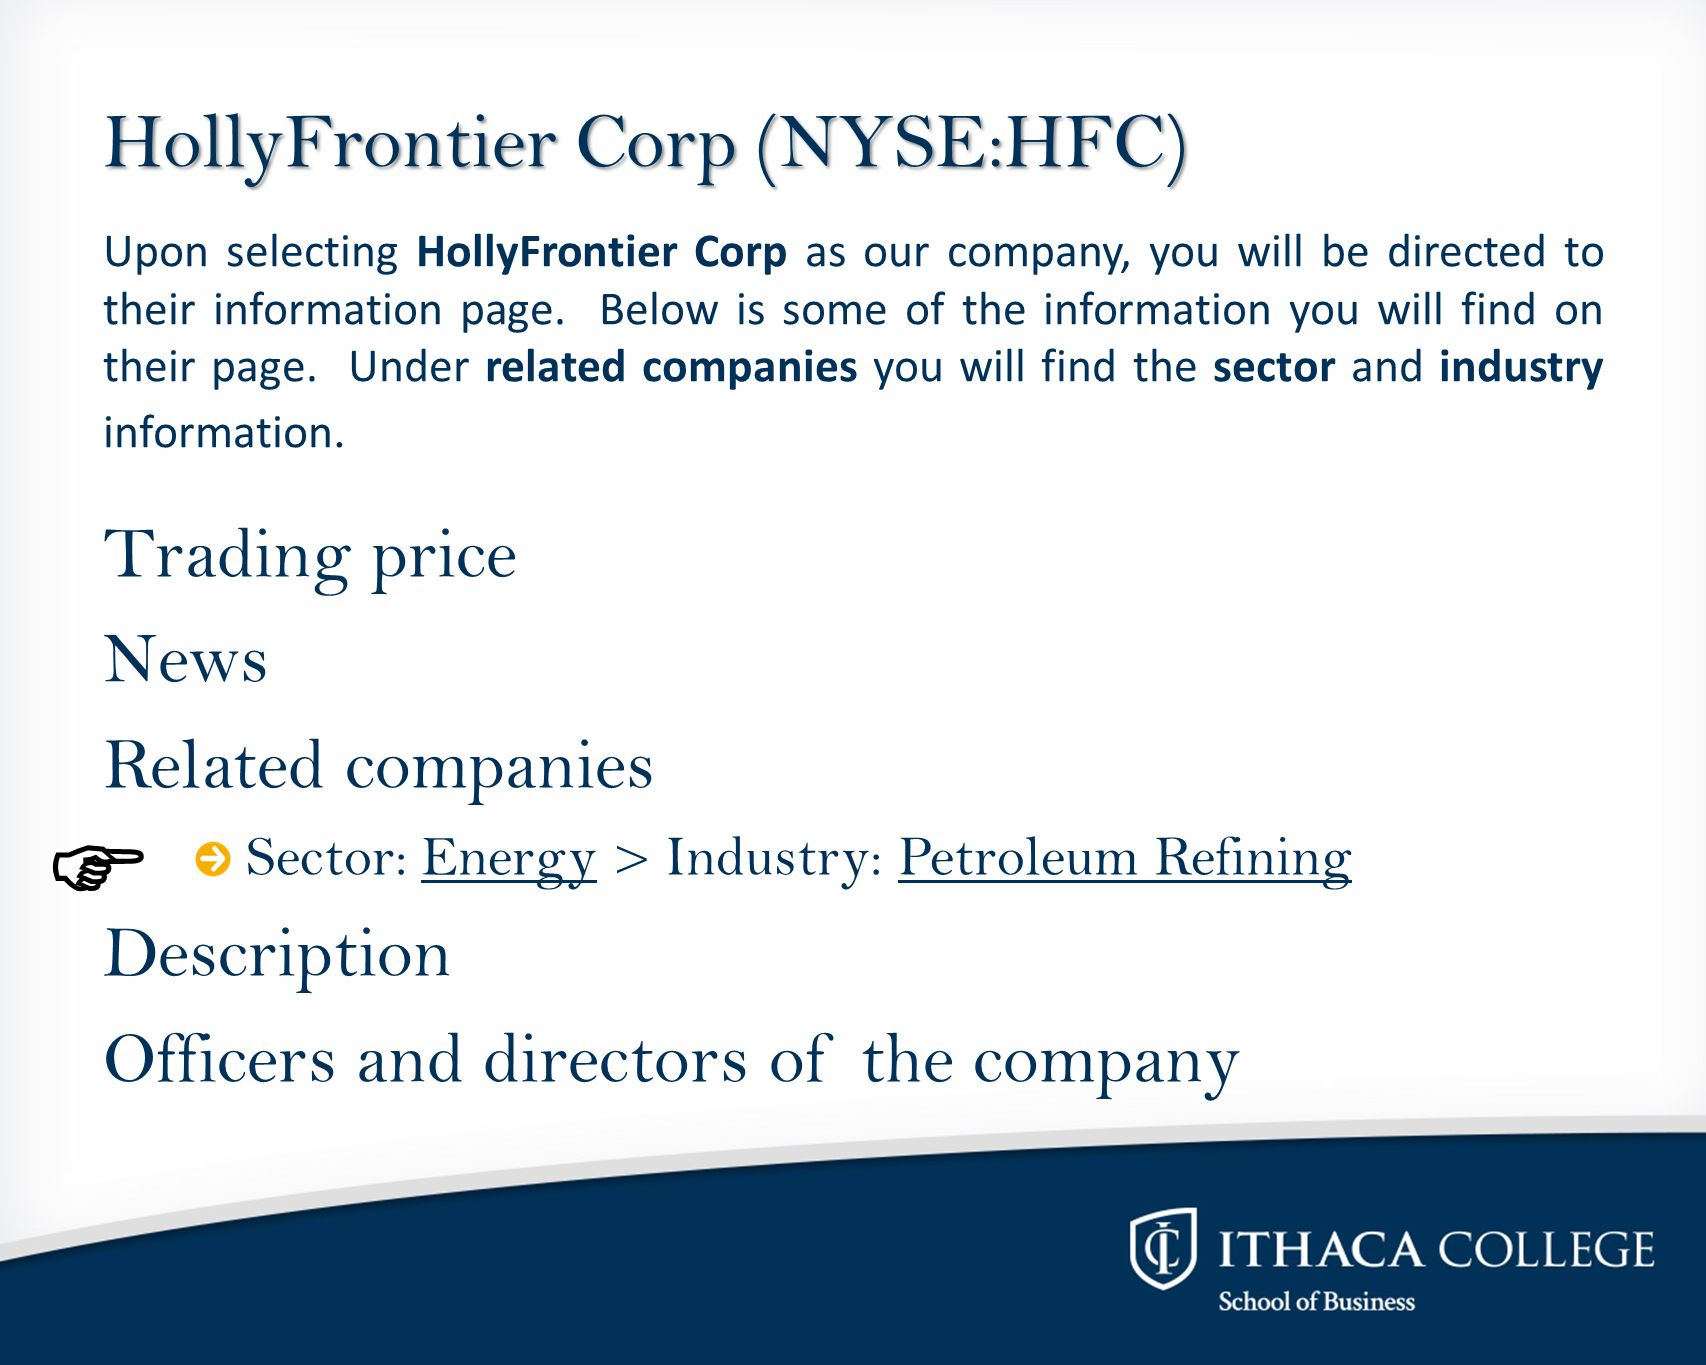 HollyFrontier Corp (NYSE:HFC) Trading price News Related companies Sector: Energy > Industry: Petroleum RefiningEnergyPetroleum Refining Description O